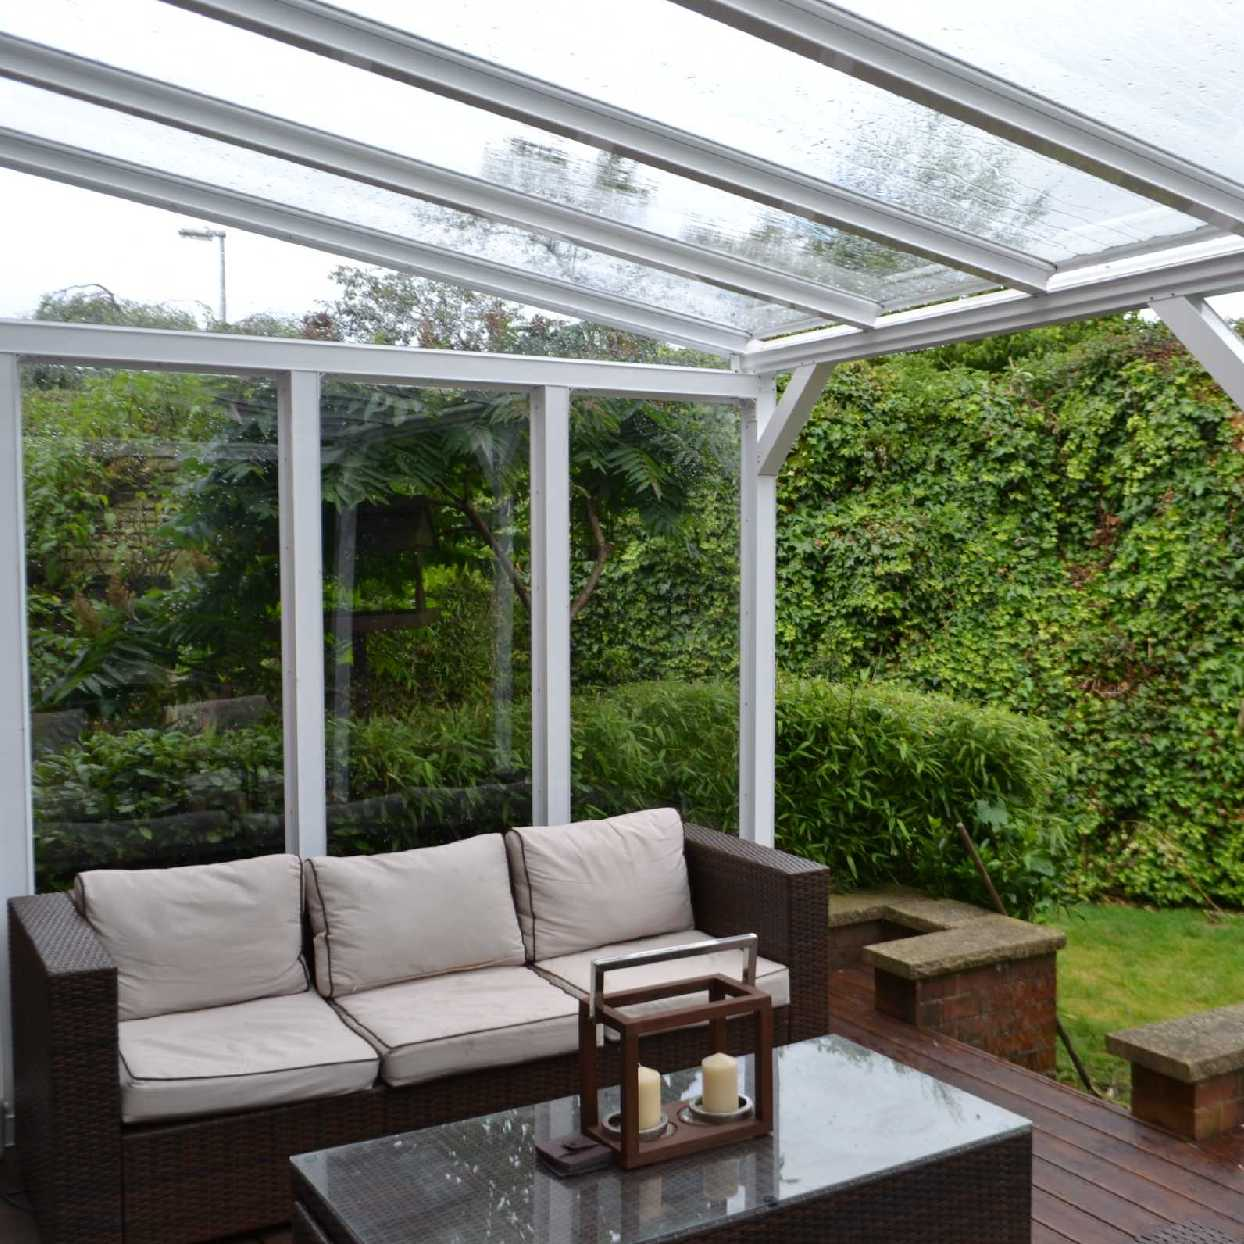 Great selection of Omega Smart Lean-To Canopy with 16mm Polycarbonate Glazing - 6.3m (W) x 2.5m (P), (4) Supporting Posts